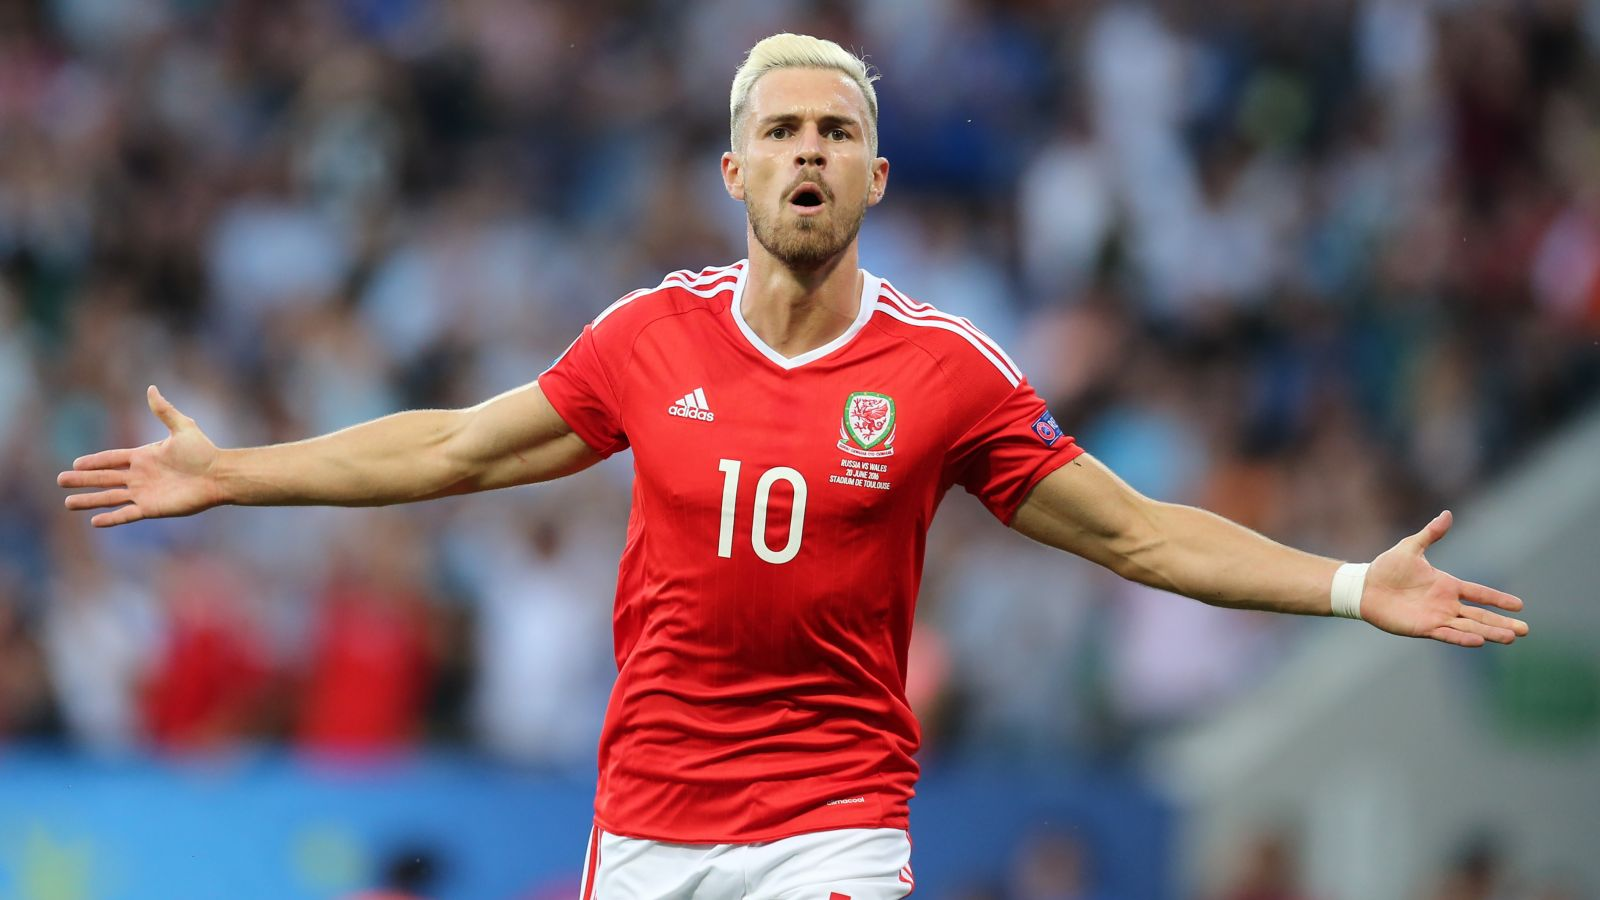 Arsenal star Ramsey emerges as a target for United boss Mourinho